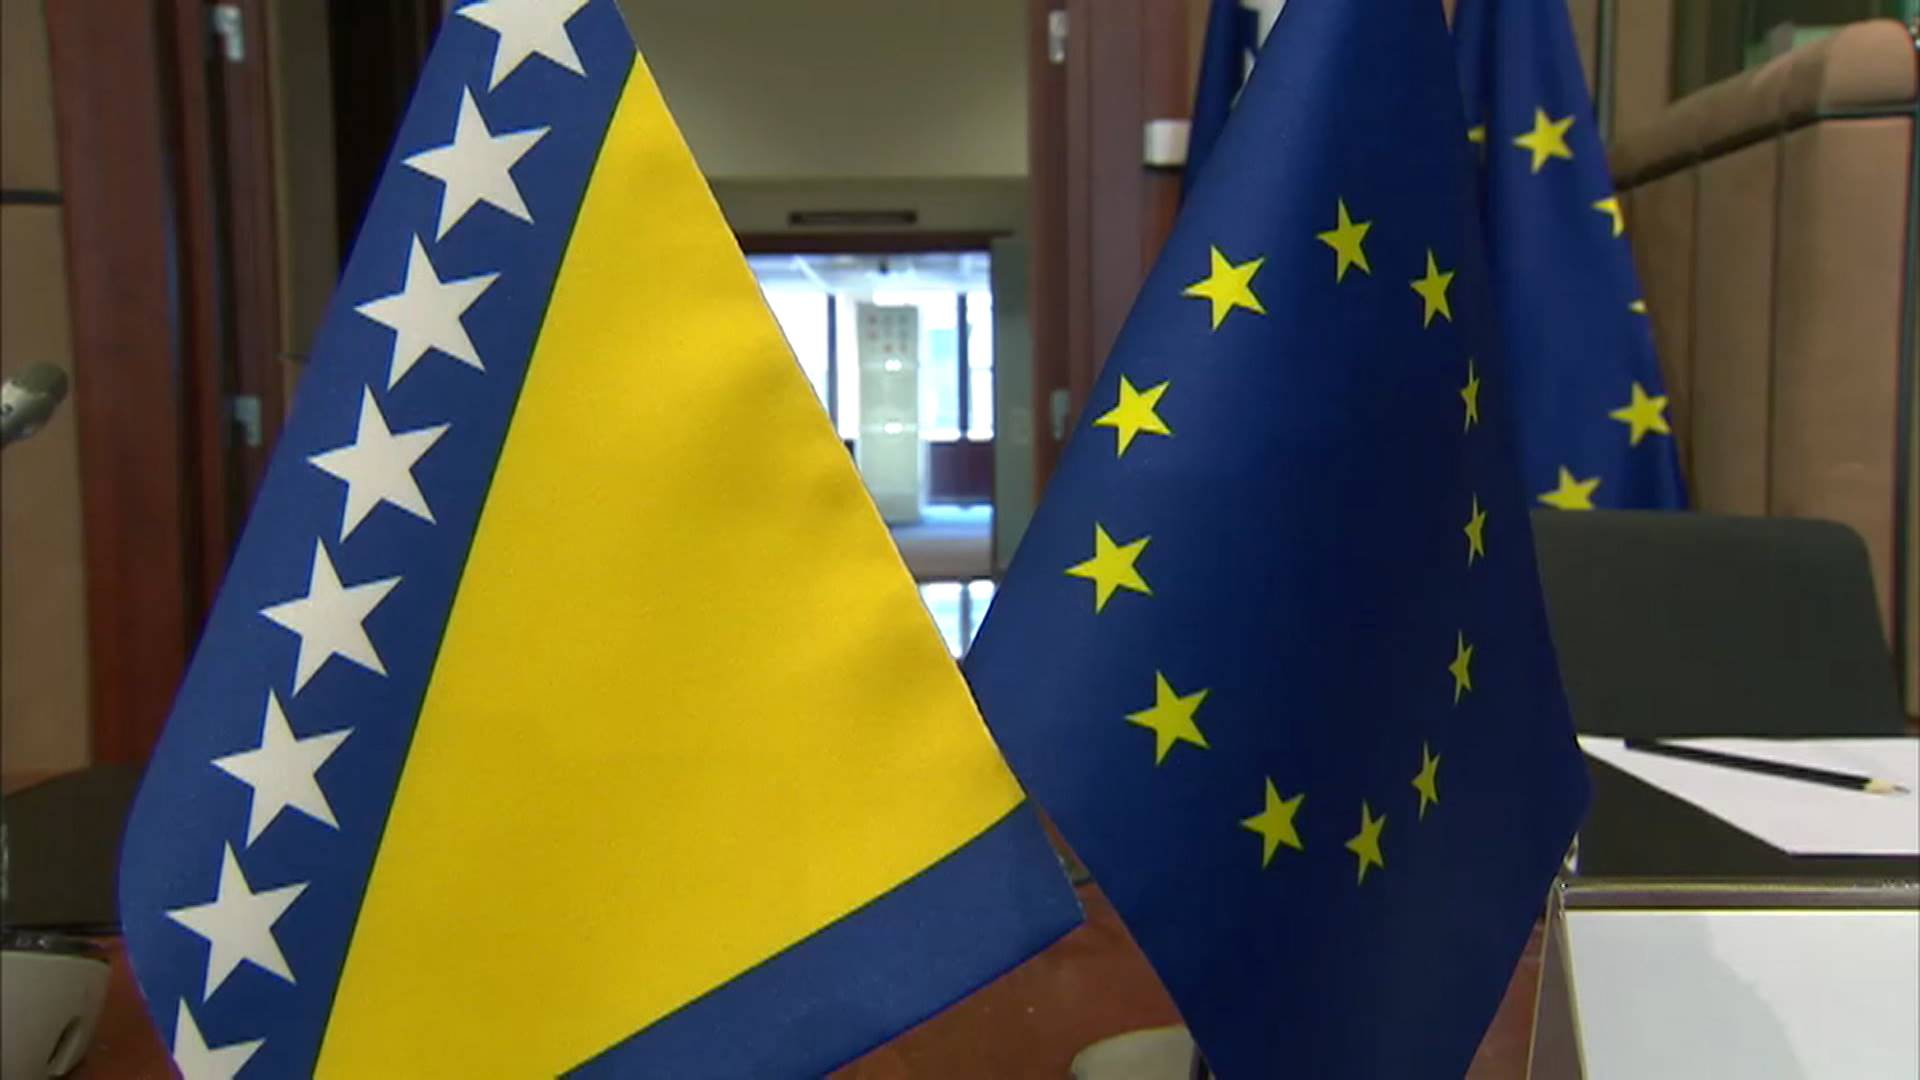 BiH: EU secures housing for more than 2,700 people